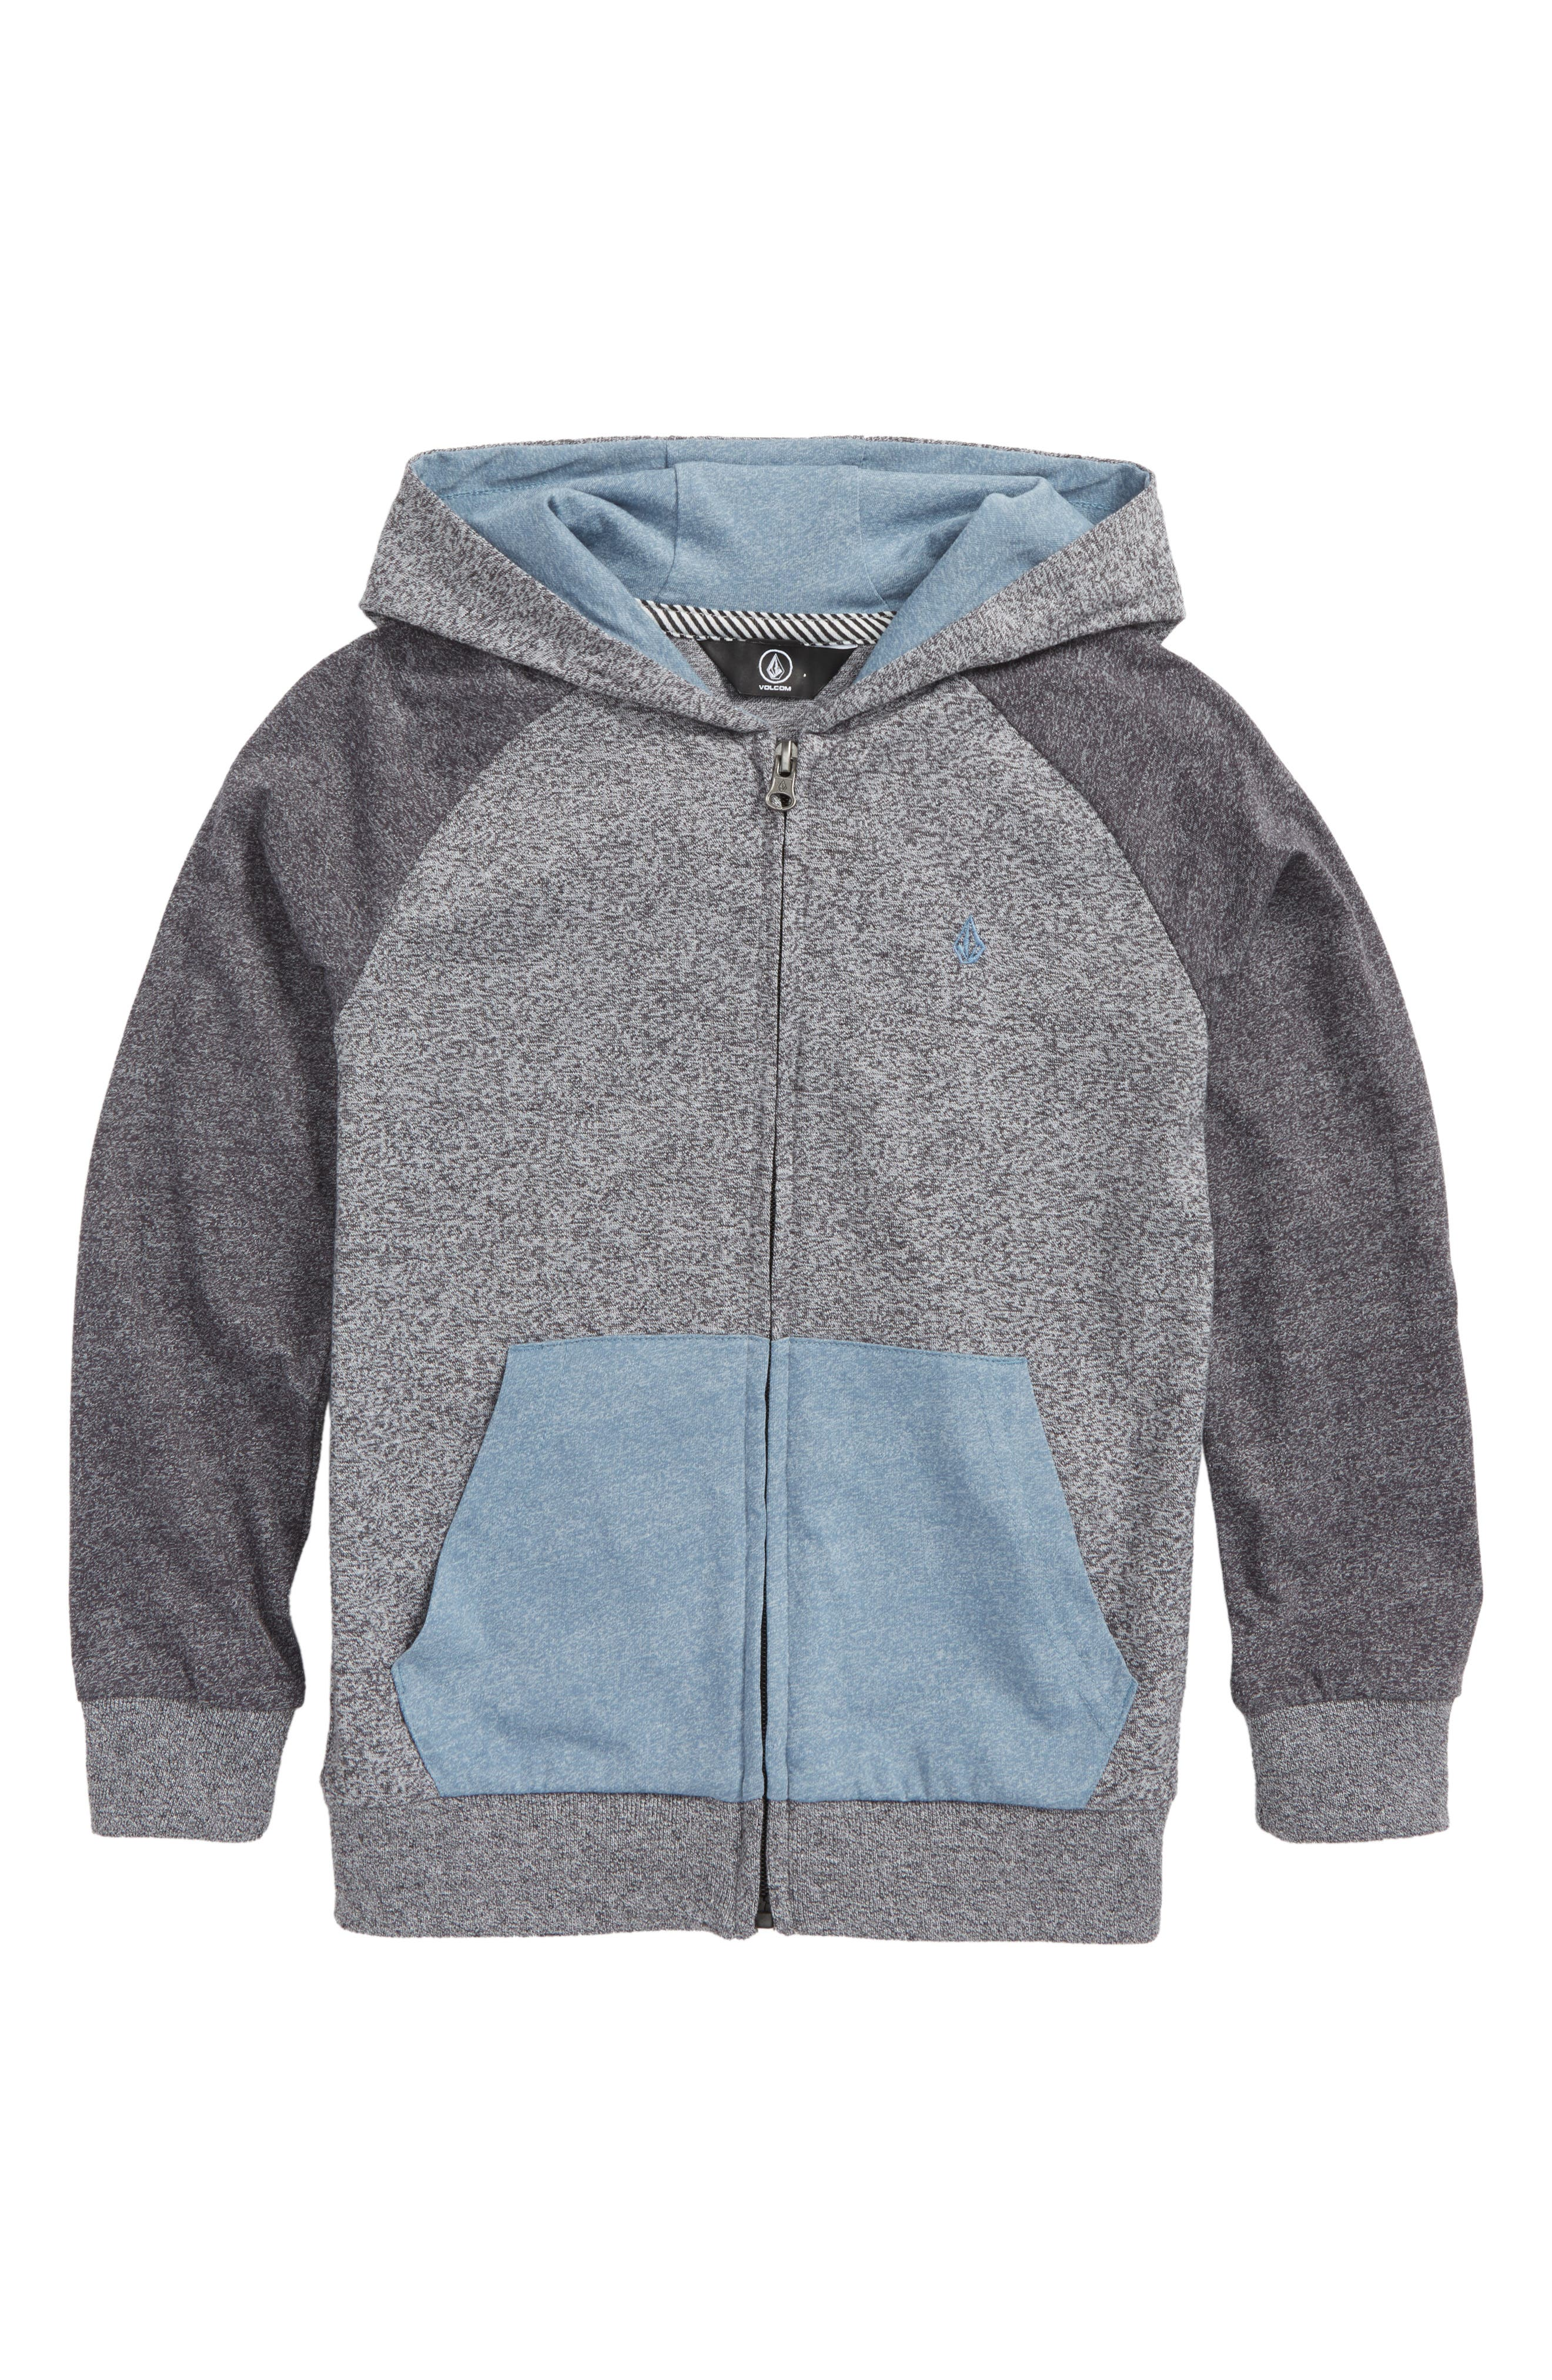 Wowzer Hoodie,                             Main thumbnail 1, color,